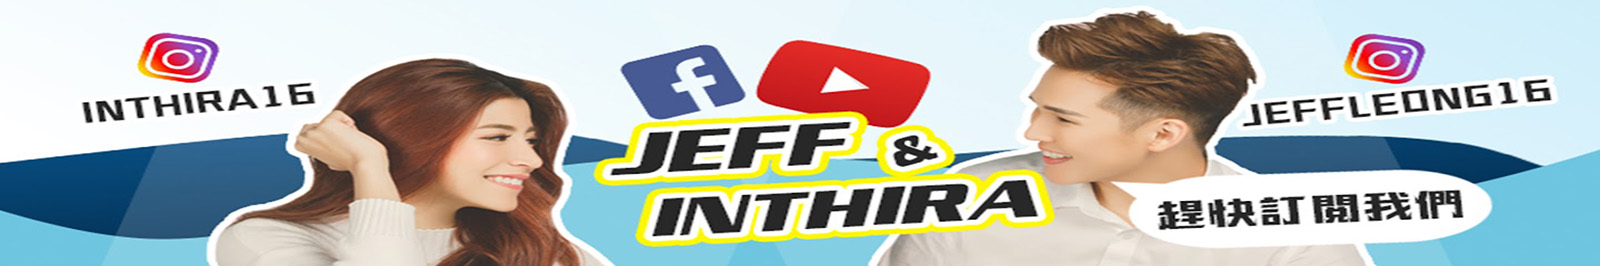 Jeff & Inthira YouTube Channel